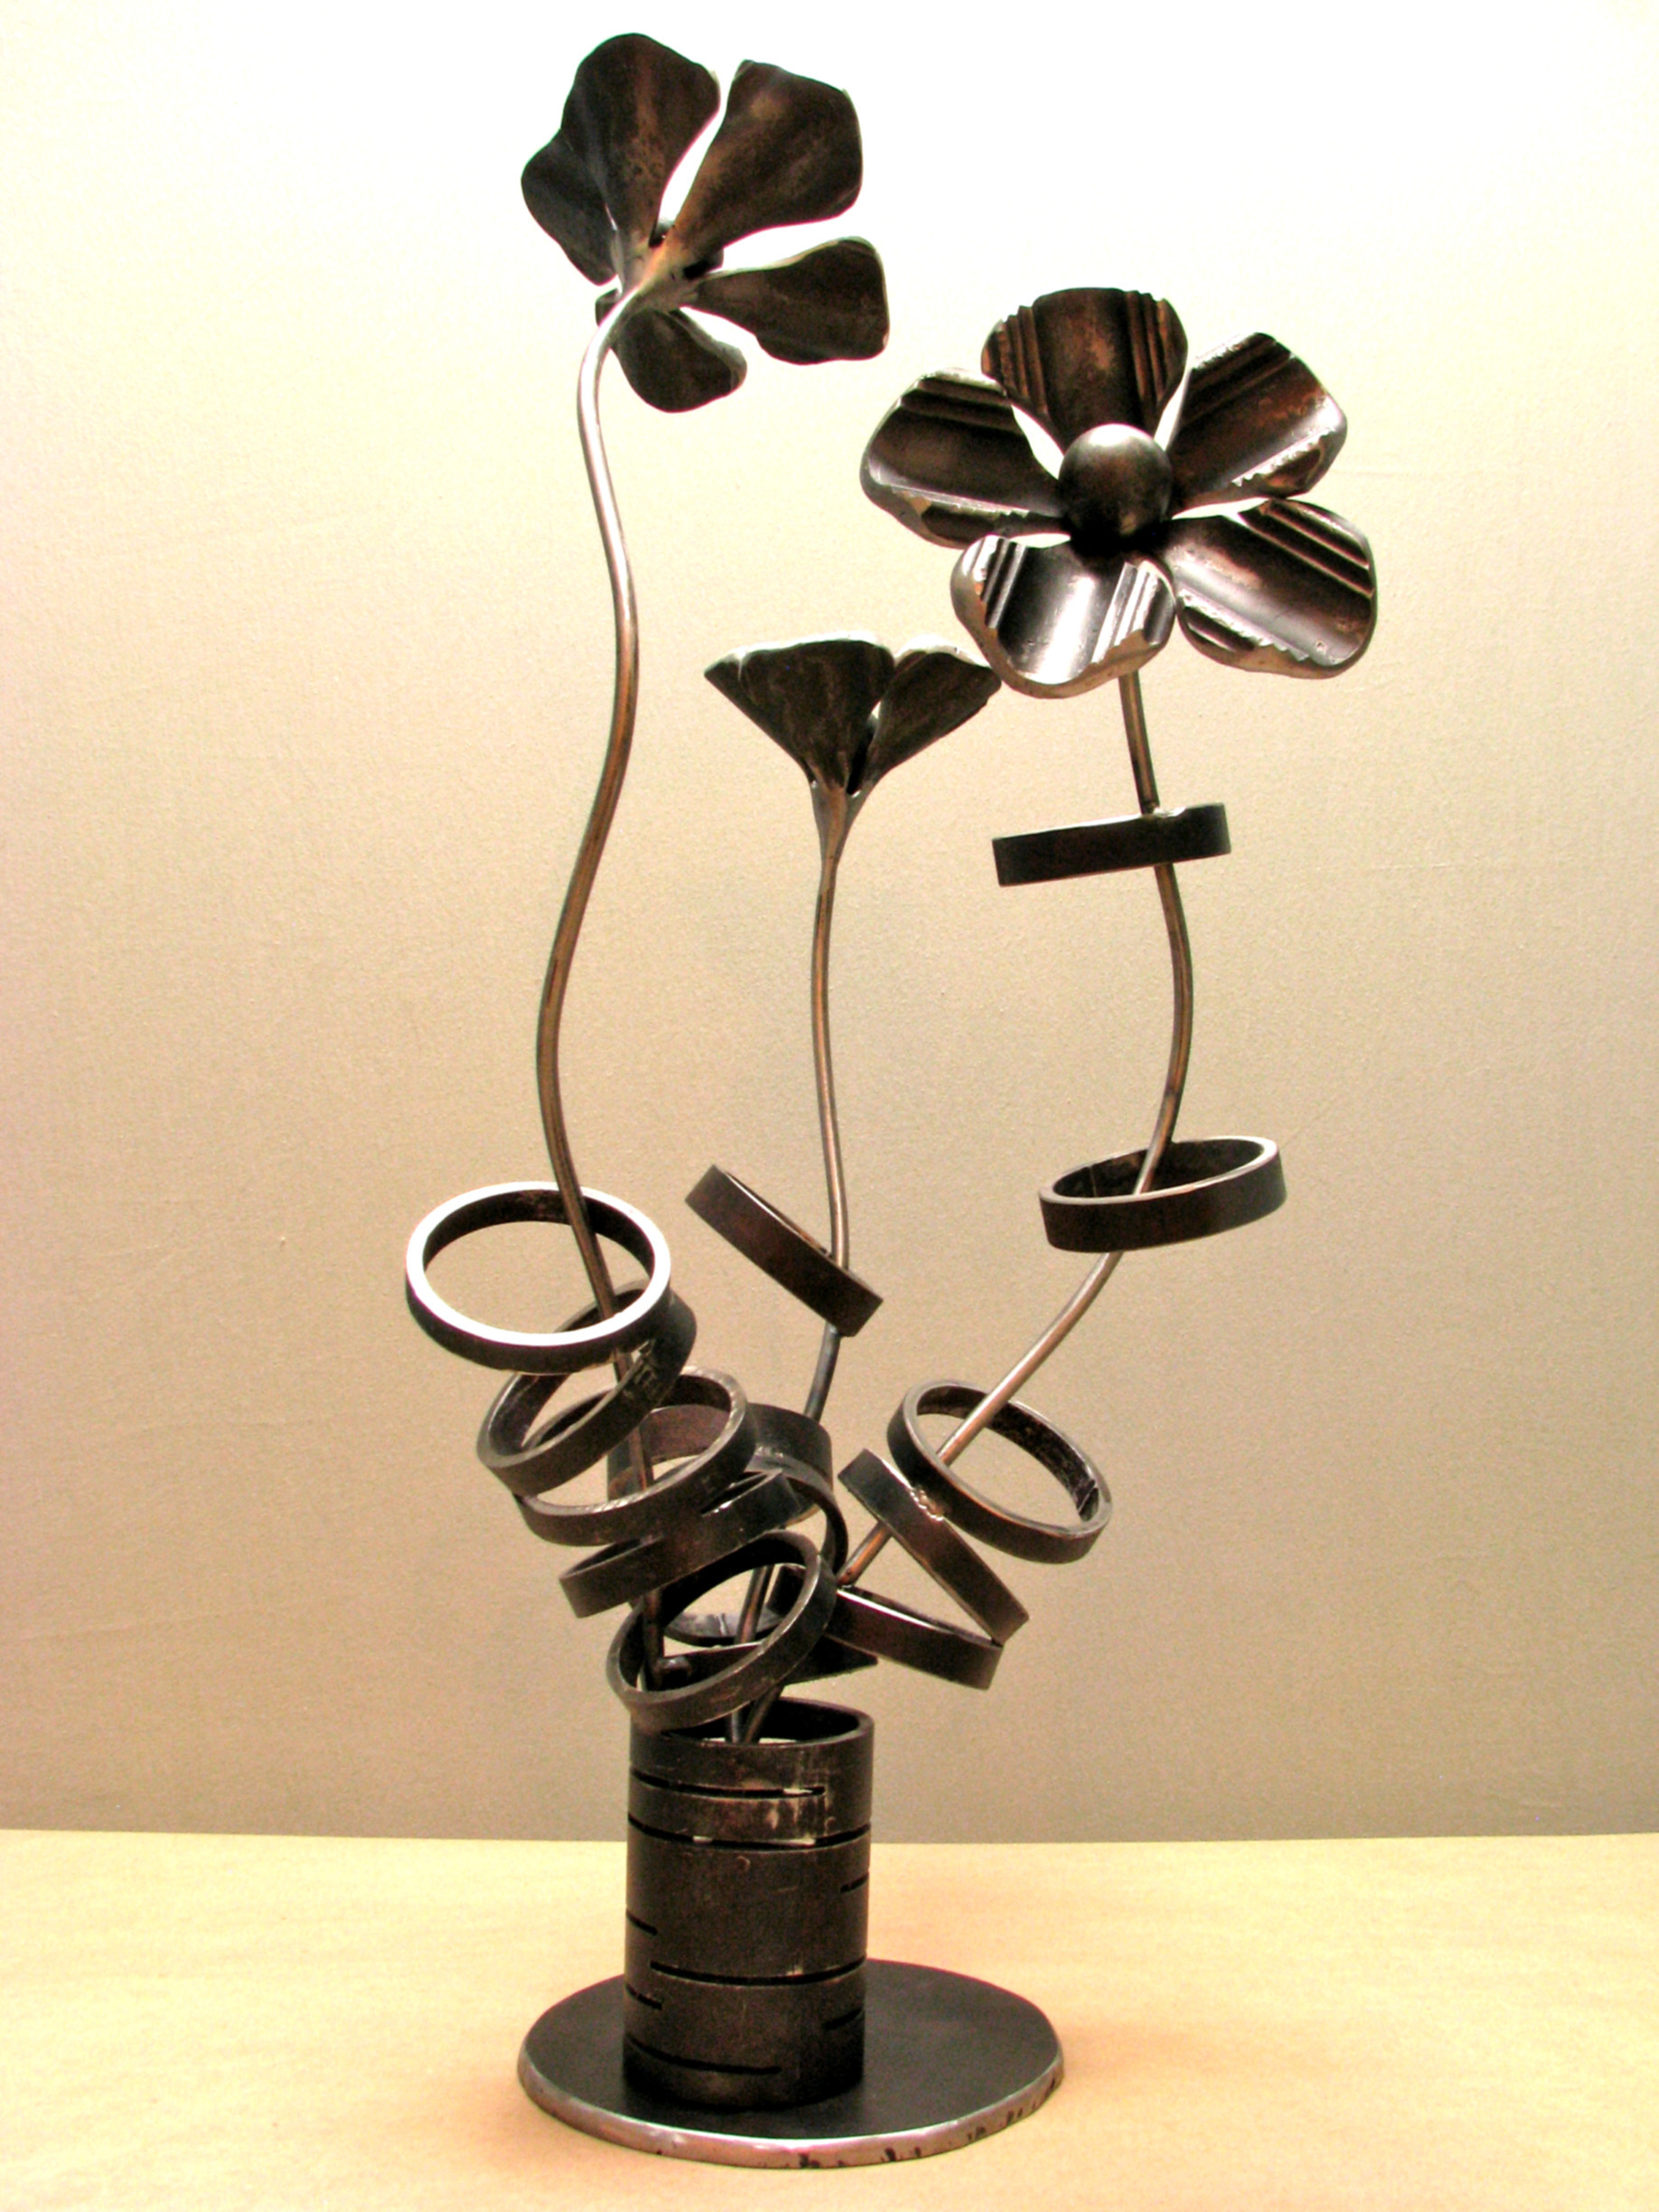 vase stands iron of 32 metal flowers for vase rituals you should know in 32 metal within ring flower oc metal solutions metal flowers for vase metal flowers for vase